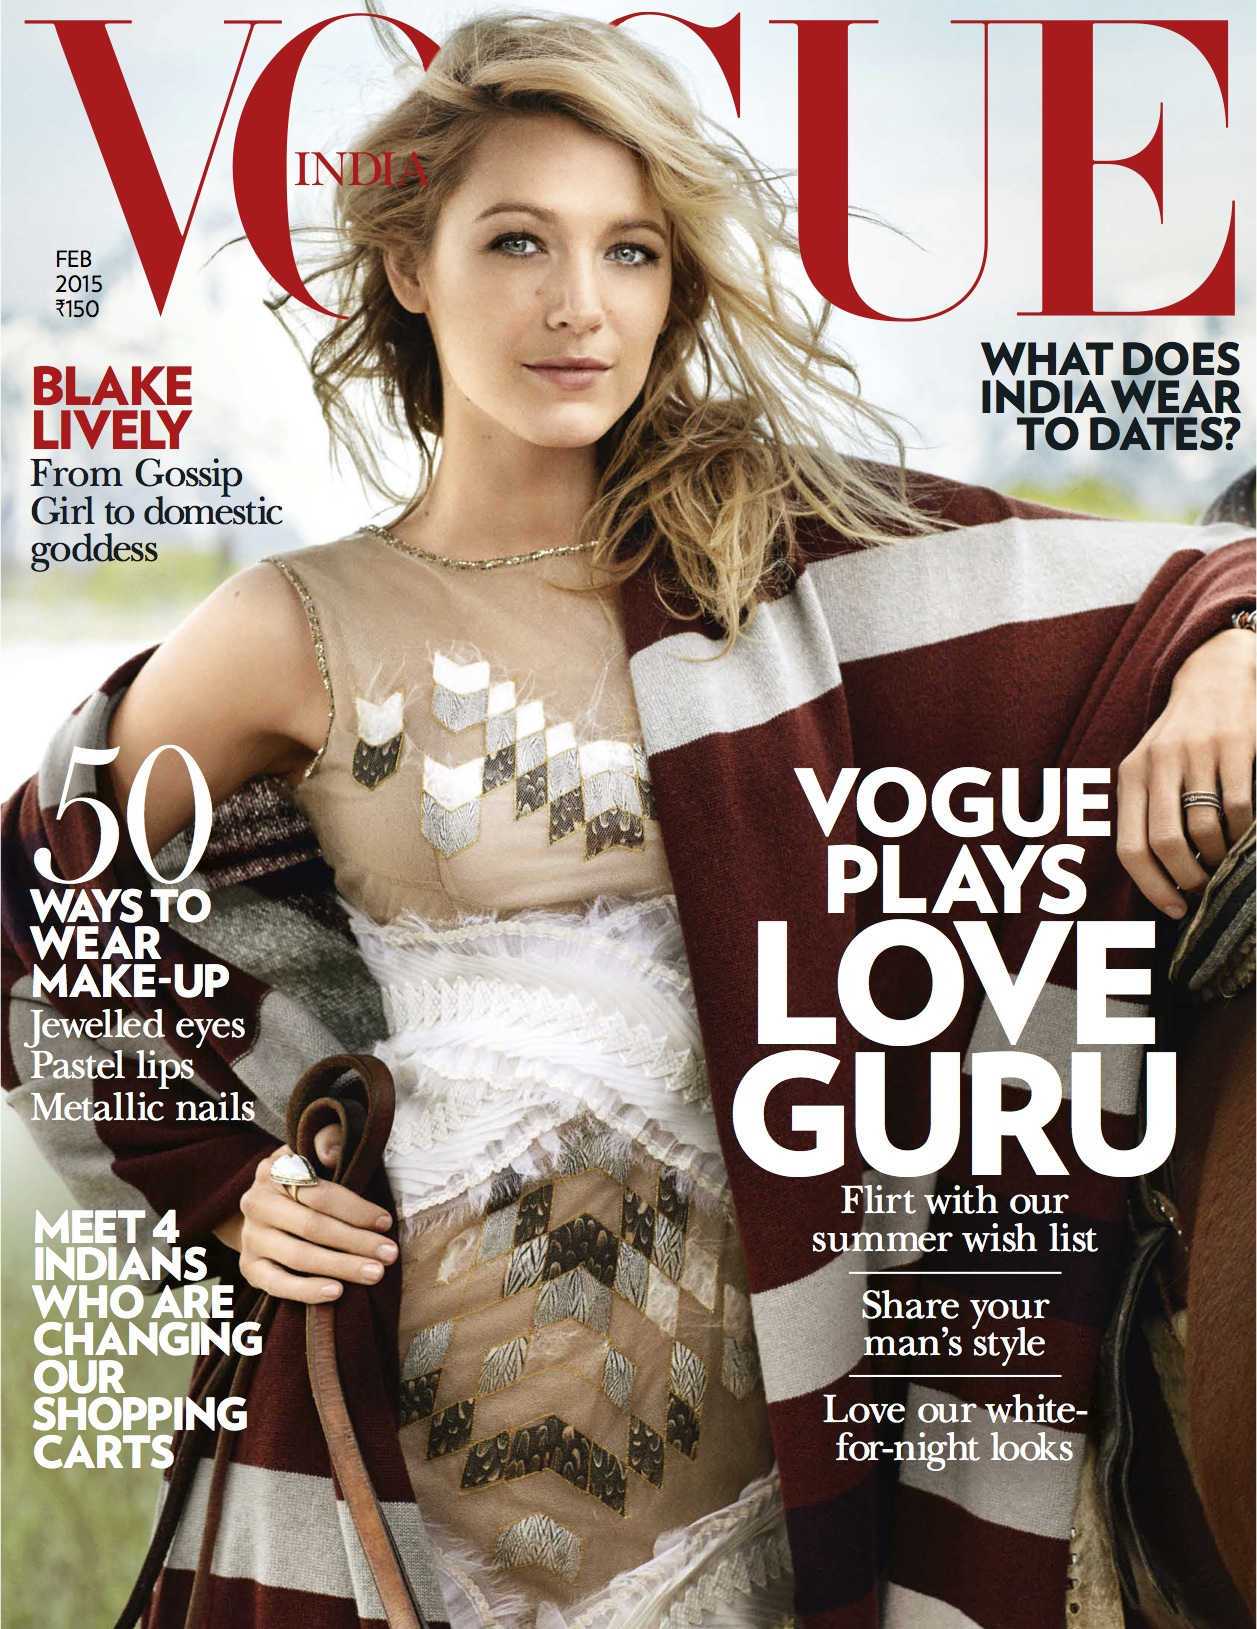 Vogue India: Sisterhood of the Travelling Bags